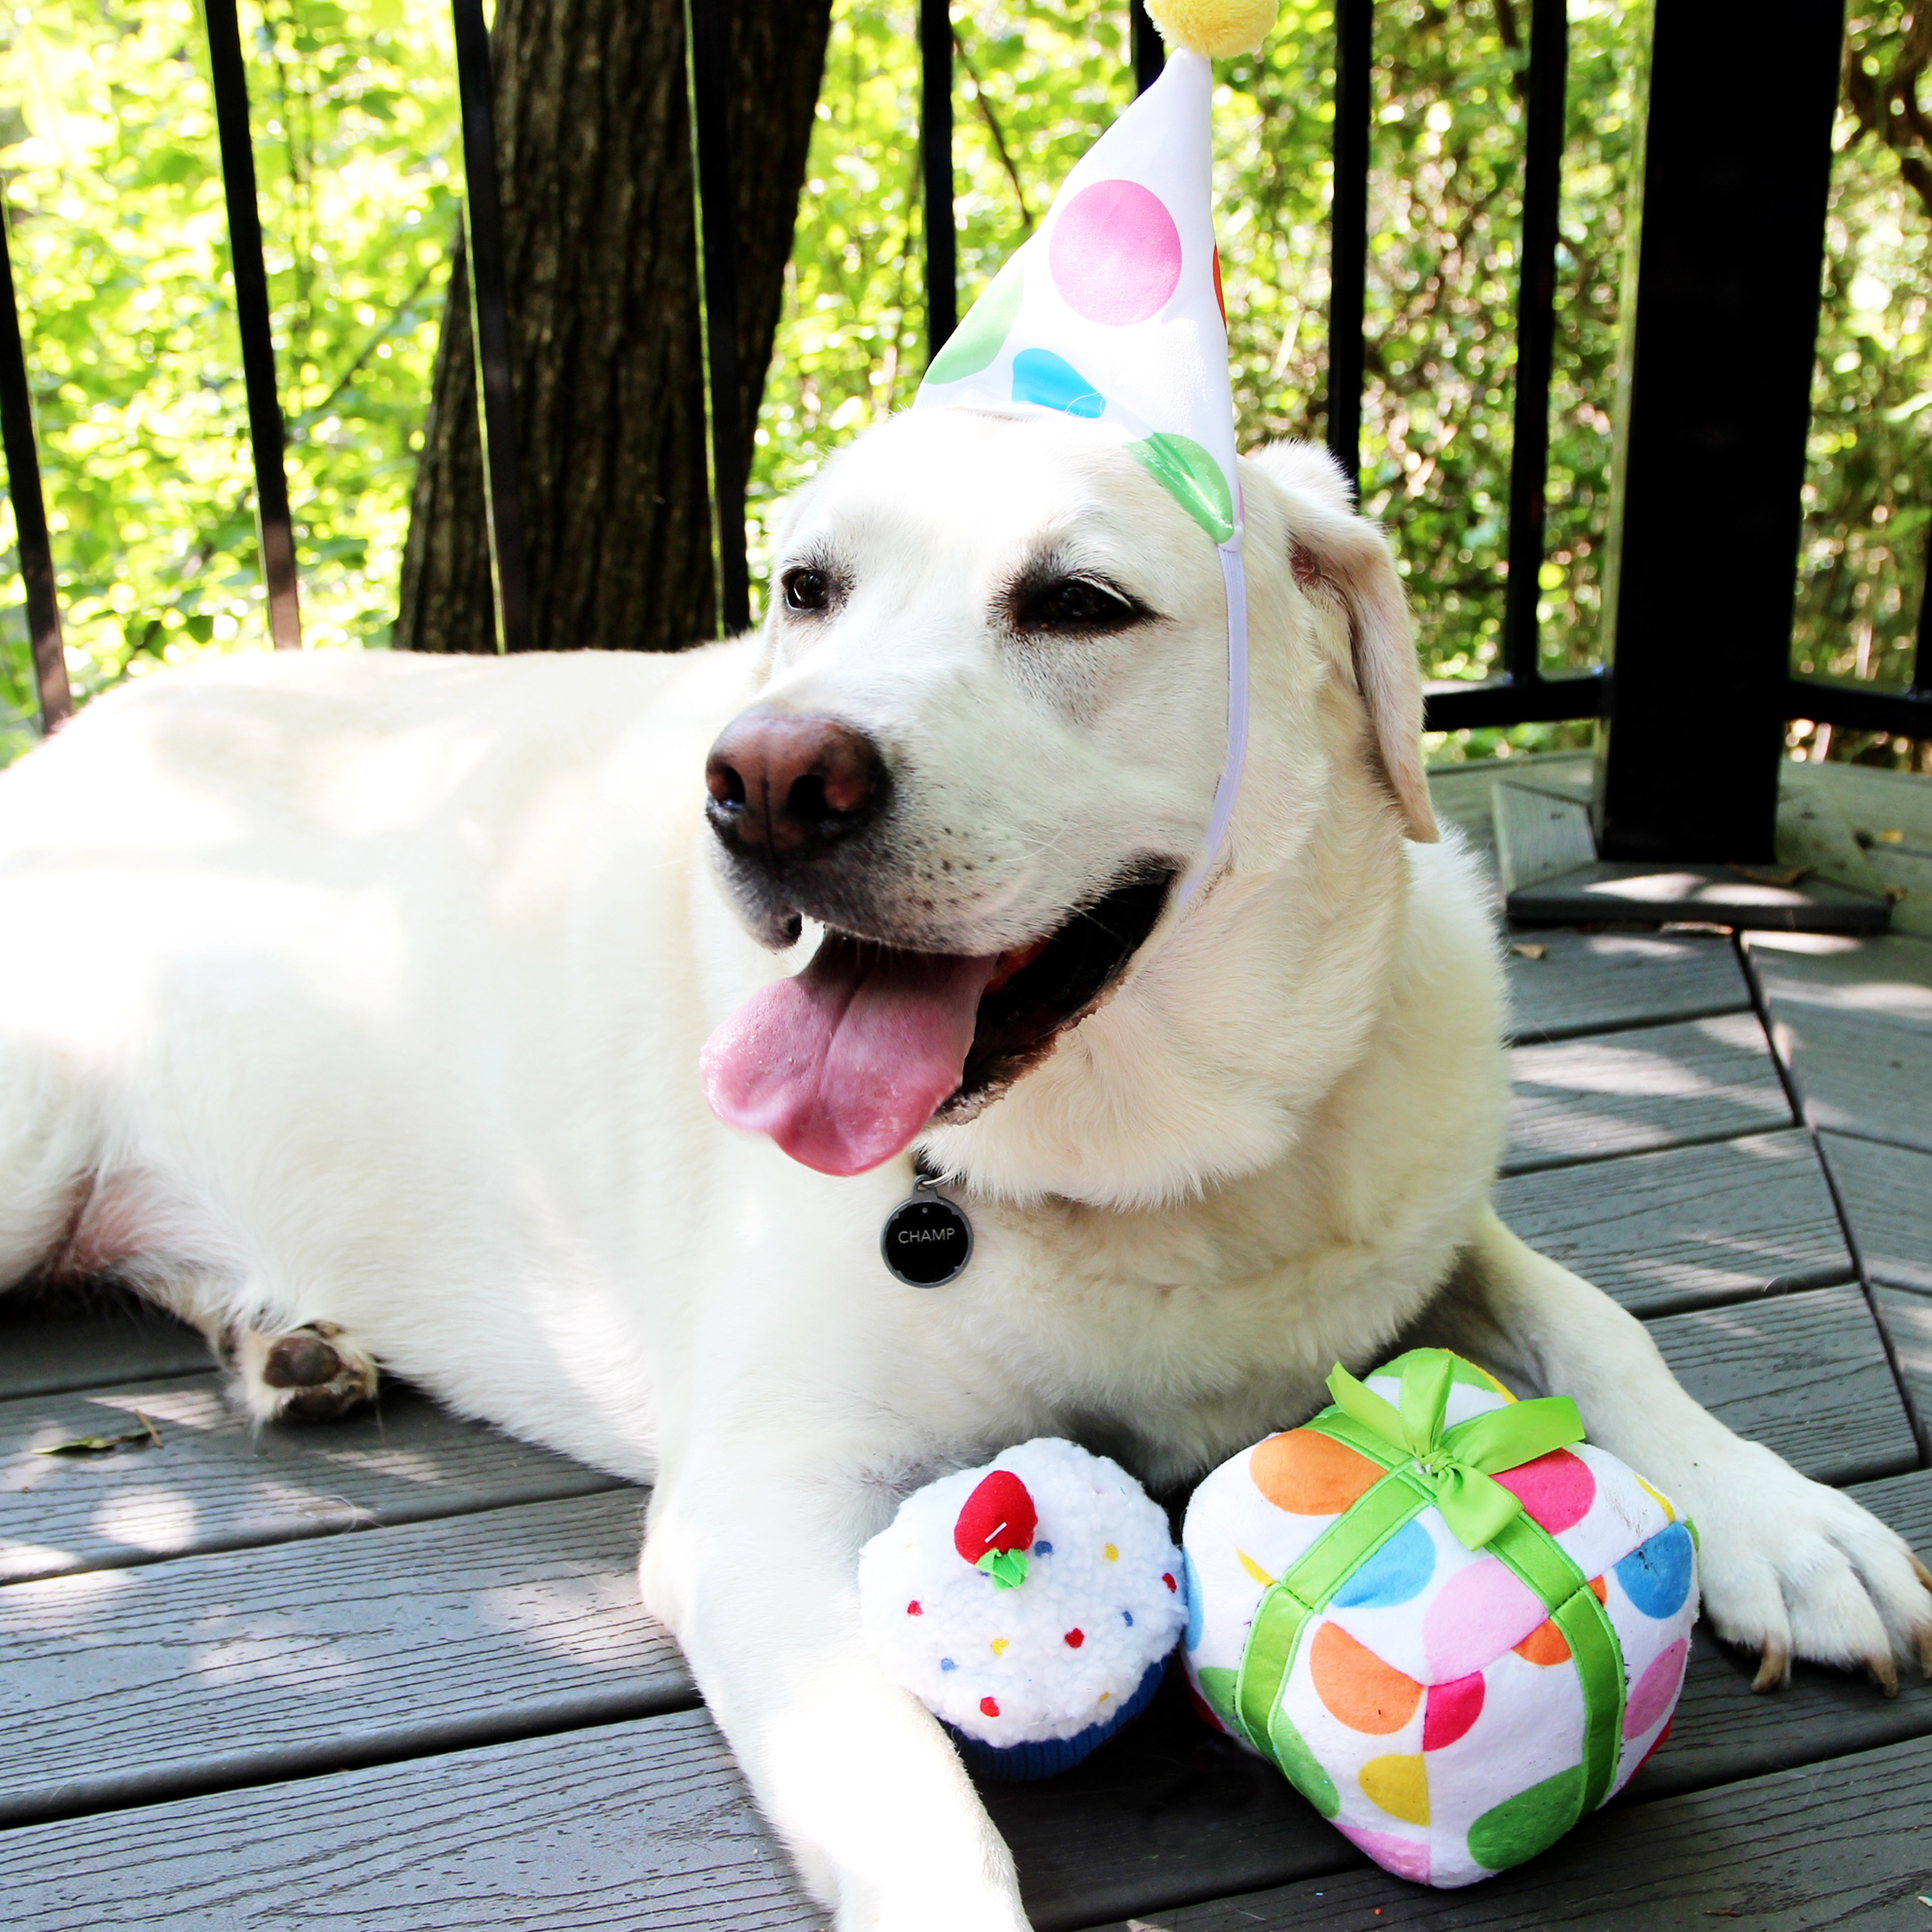 PetSmart Launches First Ever Birthday Collection With Festive Items To Celebrate Birthdays And Gotcha Days Pets